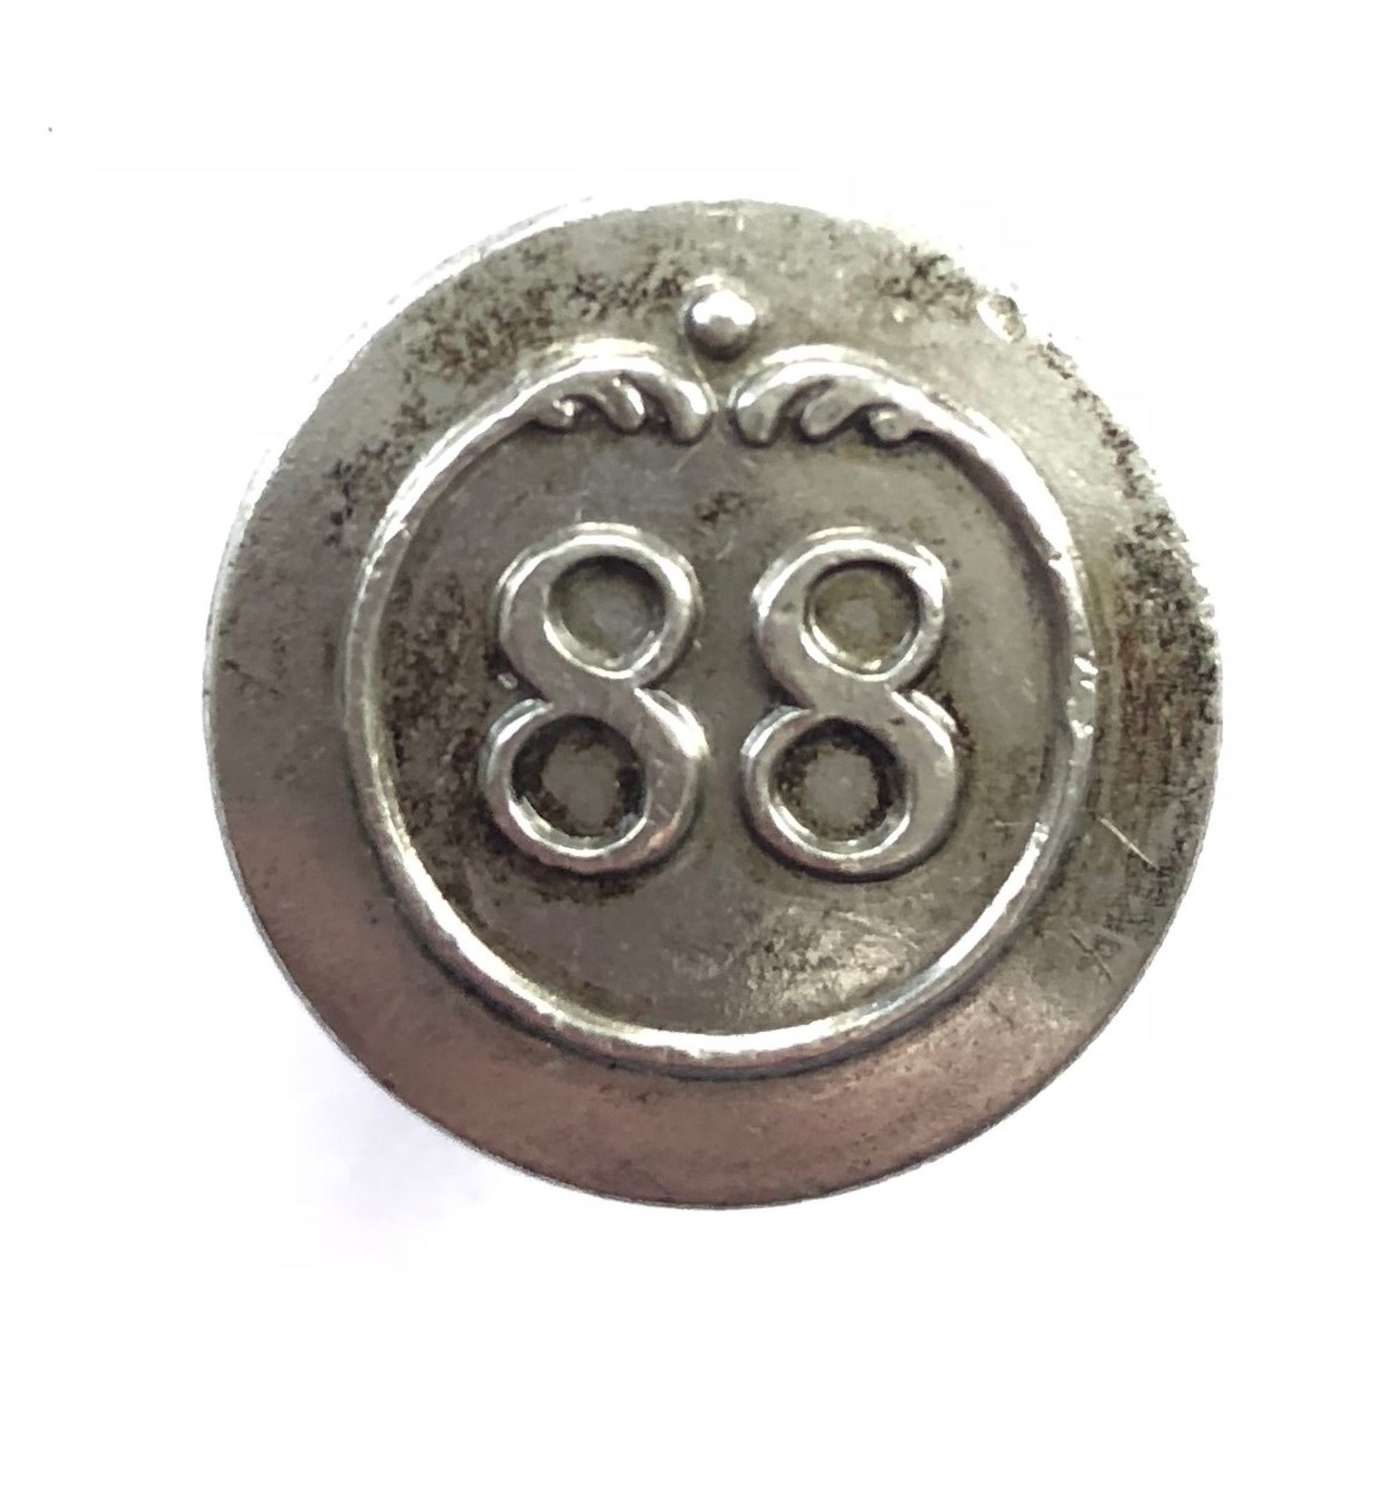 88th Connaught Rangers Virtorian pewter coatee button